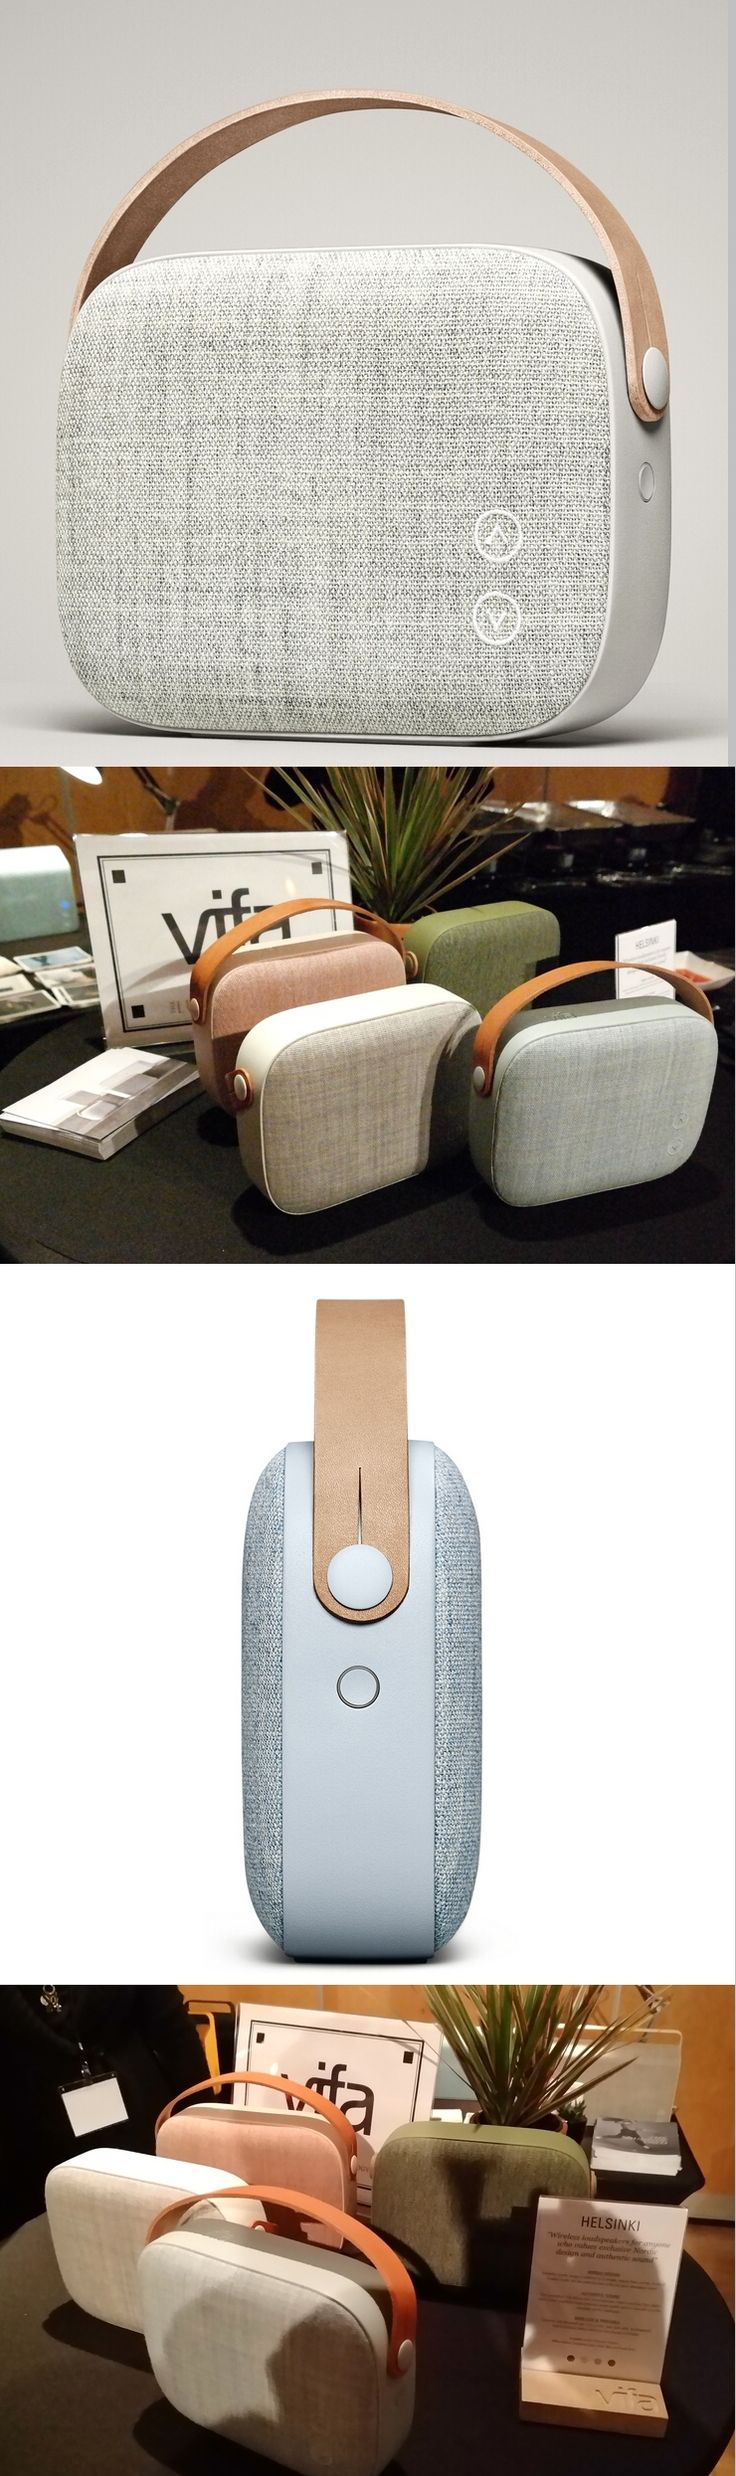 Vifa's Helsinki portable Bluetooth wireless speakers: High-def audio with Nordic style. The $379 unit has acoustically transparent wool covers by @kvadrattextiles of Denmark, @vifadk's home, and a leather strap by Sweden's @tarnsjogarveri. A solid aluminum frame, two 50mm drivers and two 60mm woofers offer clear highs and solid bass, said Vifa. The 3-pound unit, seen at the Luxury Technology Show in NYC, comes in dusty rose, misty blue, sandstone grey and willow green. CLICK THE PIC…